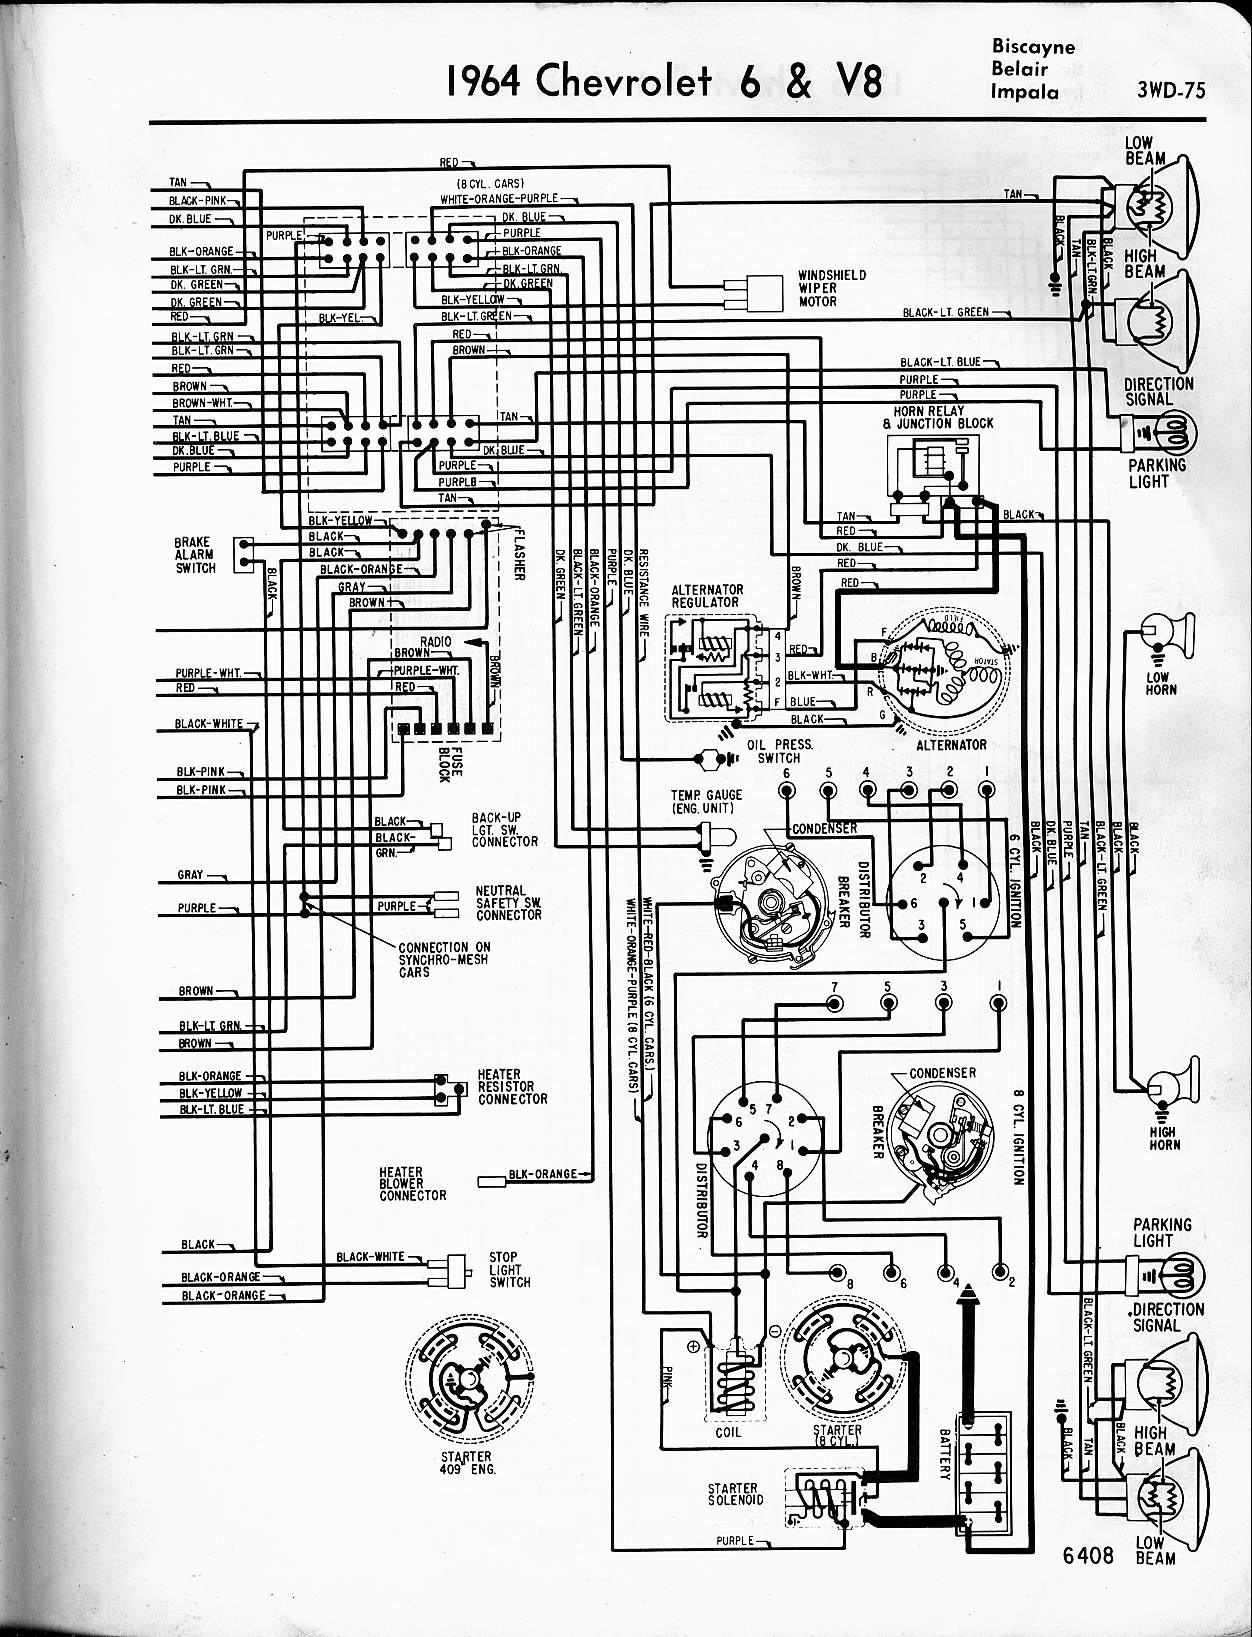 impala wiring schematic wiring diagram third level57 65 chevy wiring diagrams 2007 chevy impala wiring diagram 1964 6 \u0026 v8 biscayne,